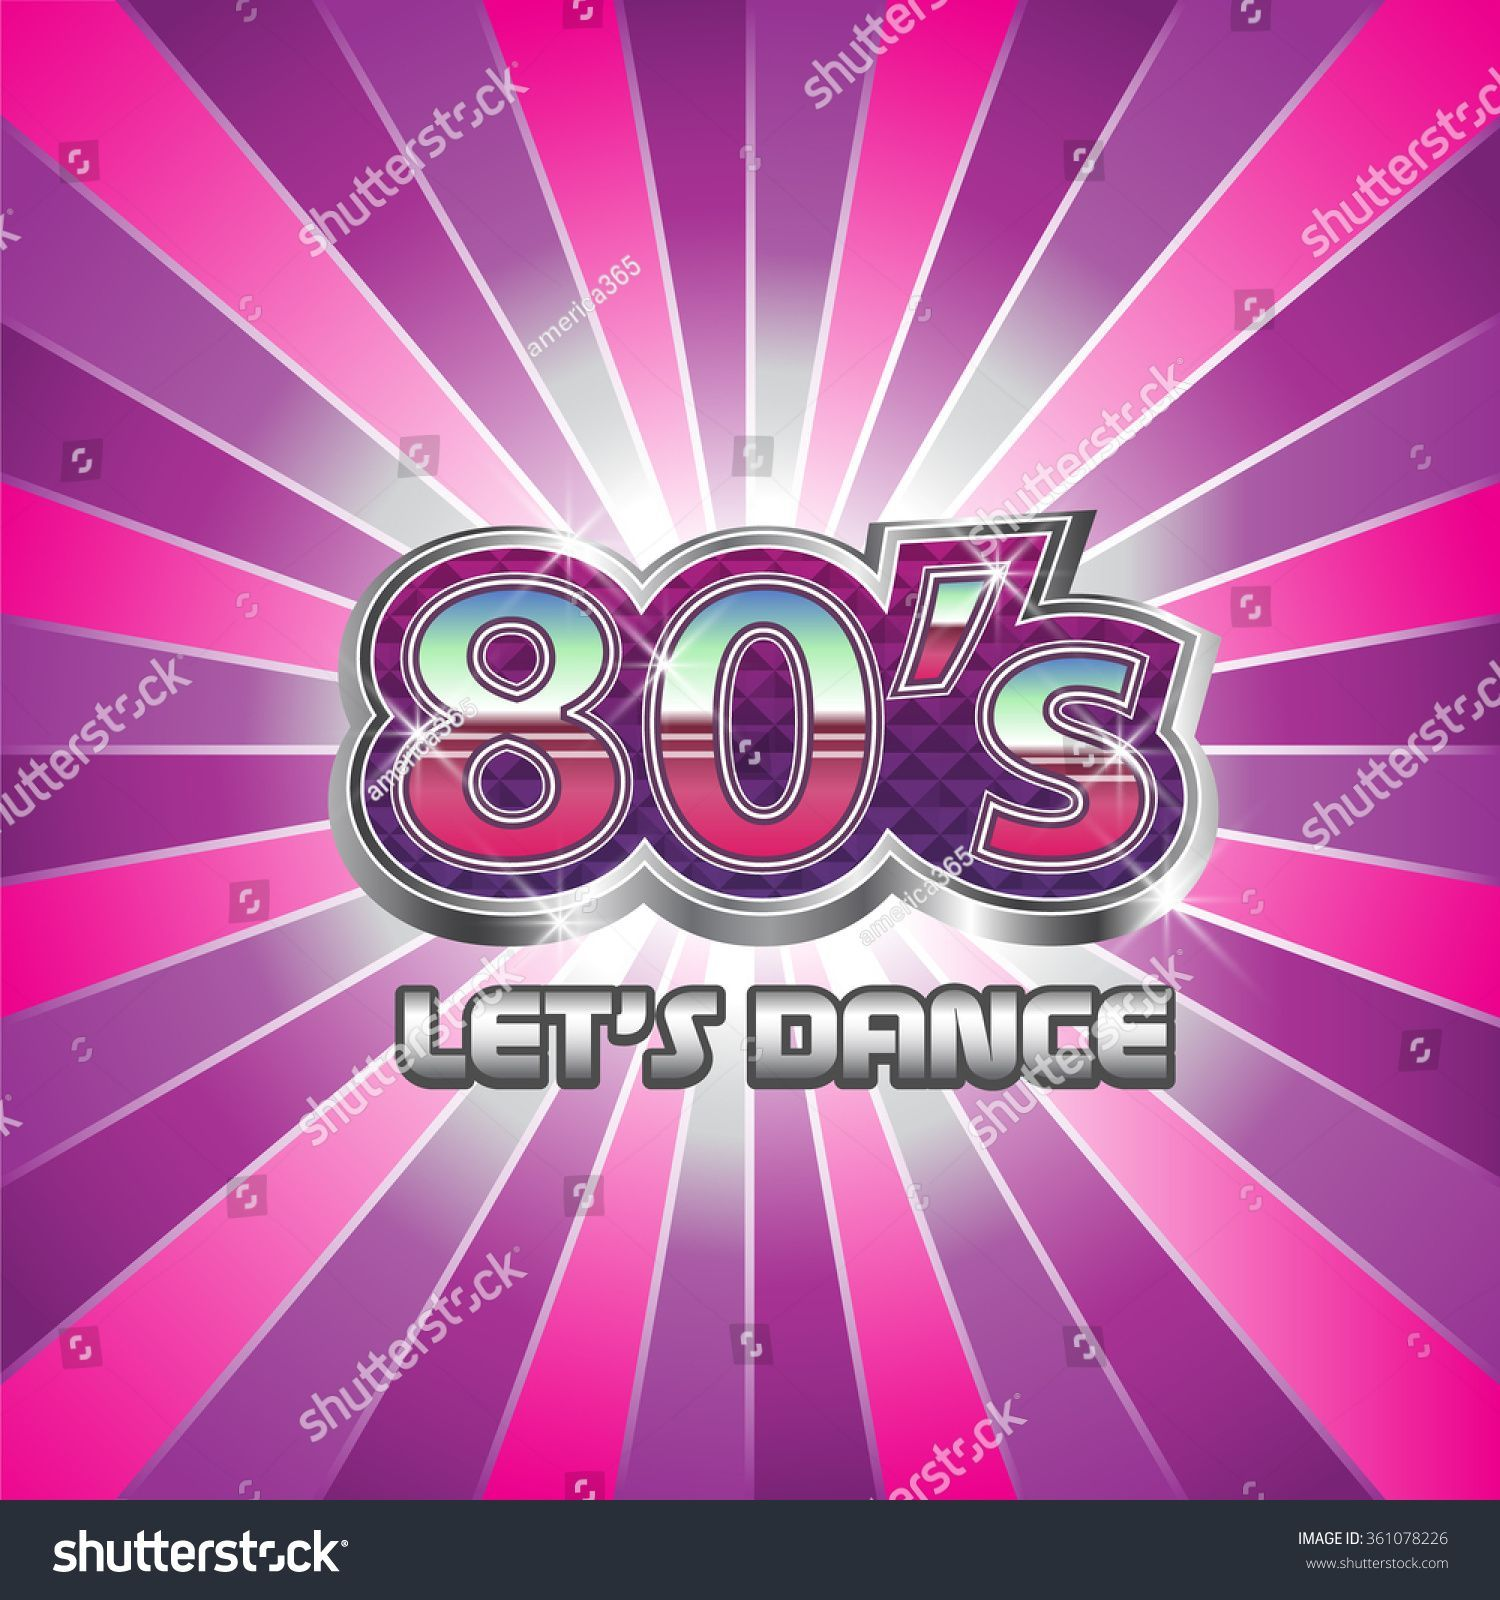 80s Dance Party illustration Vector graphic #party #80